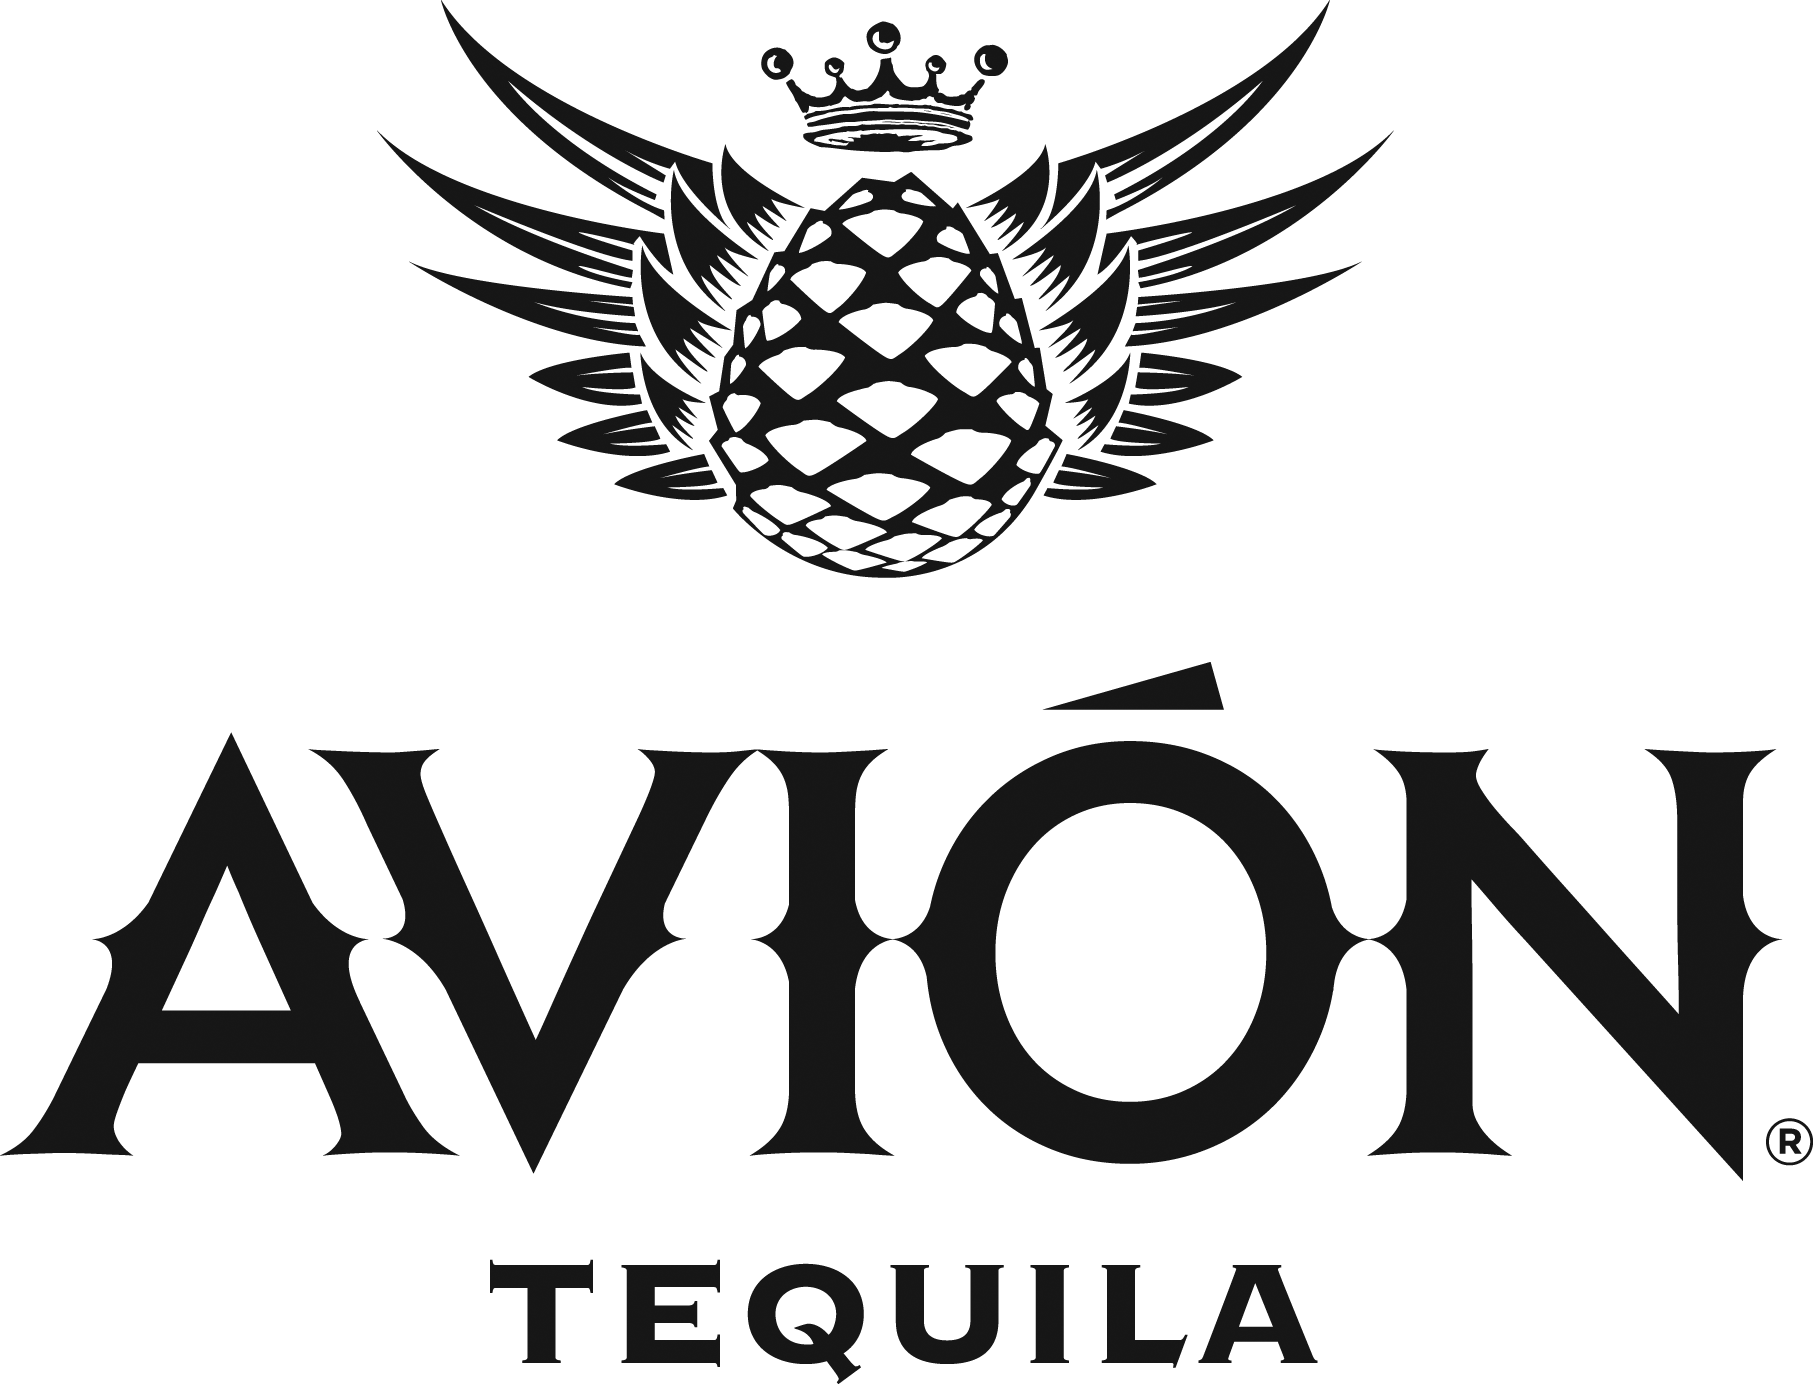 Avion Full Logo Black Hi Res PNG with Transparent Background.png